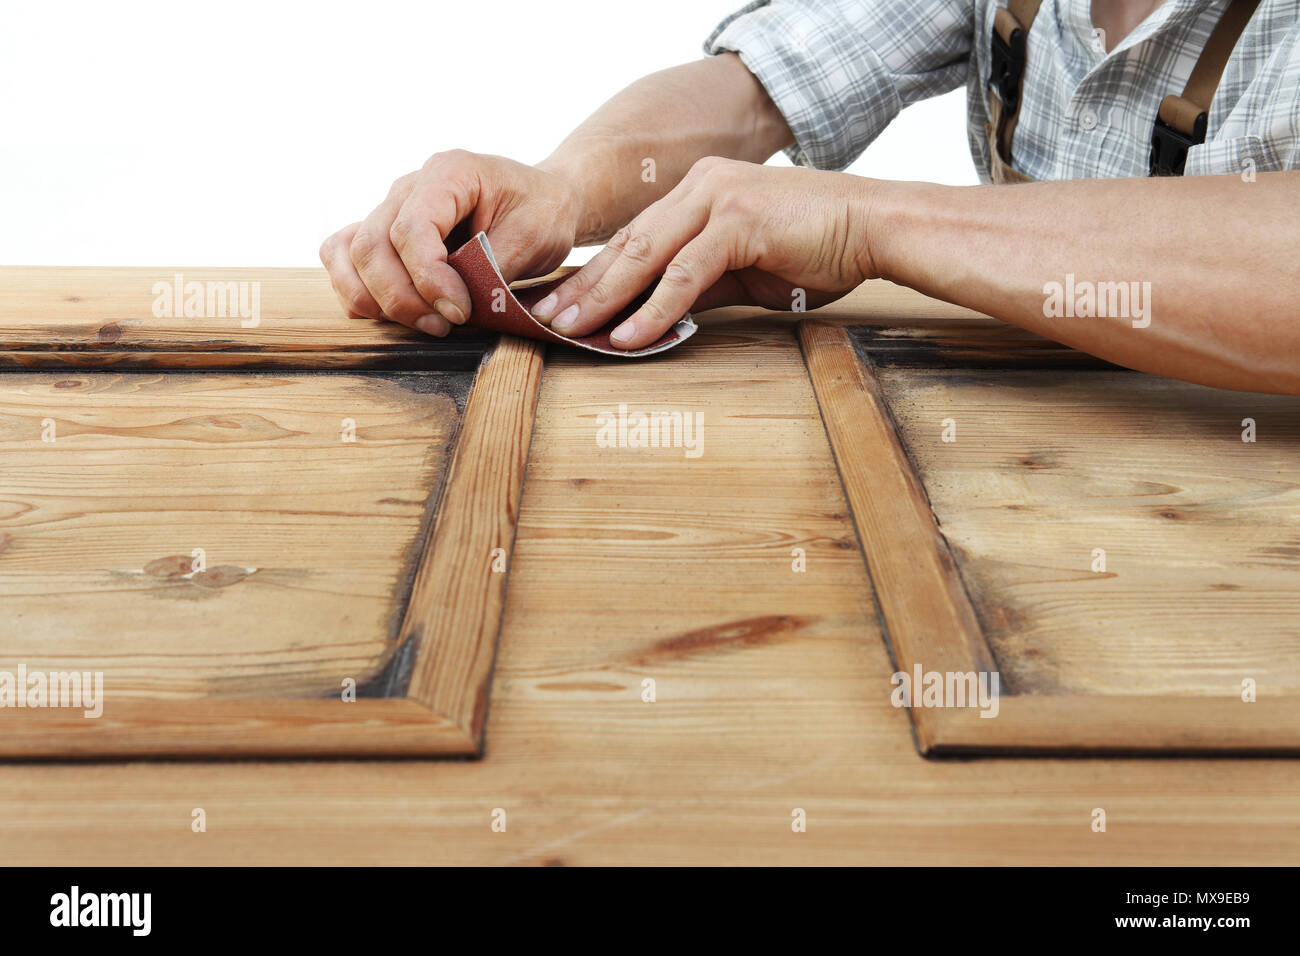 carpenter work the wood with the sandpaper - Stock Image